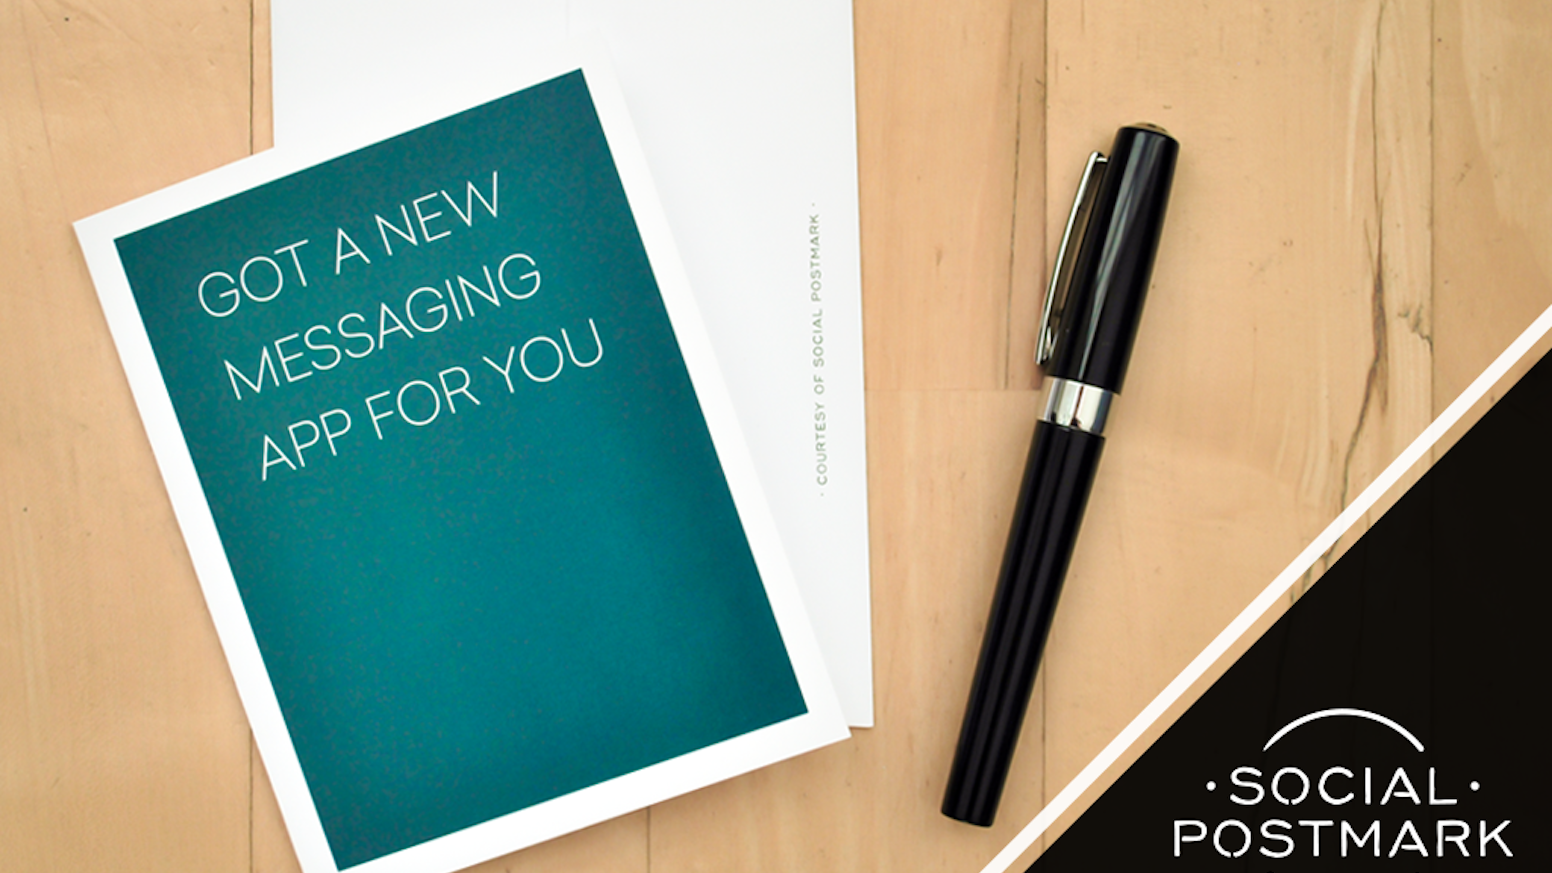 Social Postmark Greeting Cards Without Character Limits By Jake